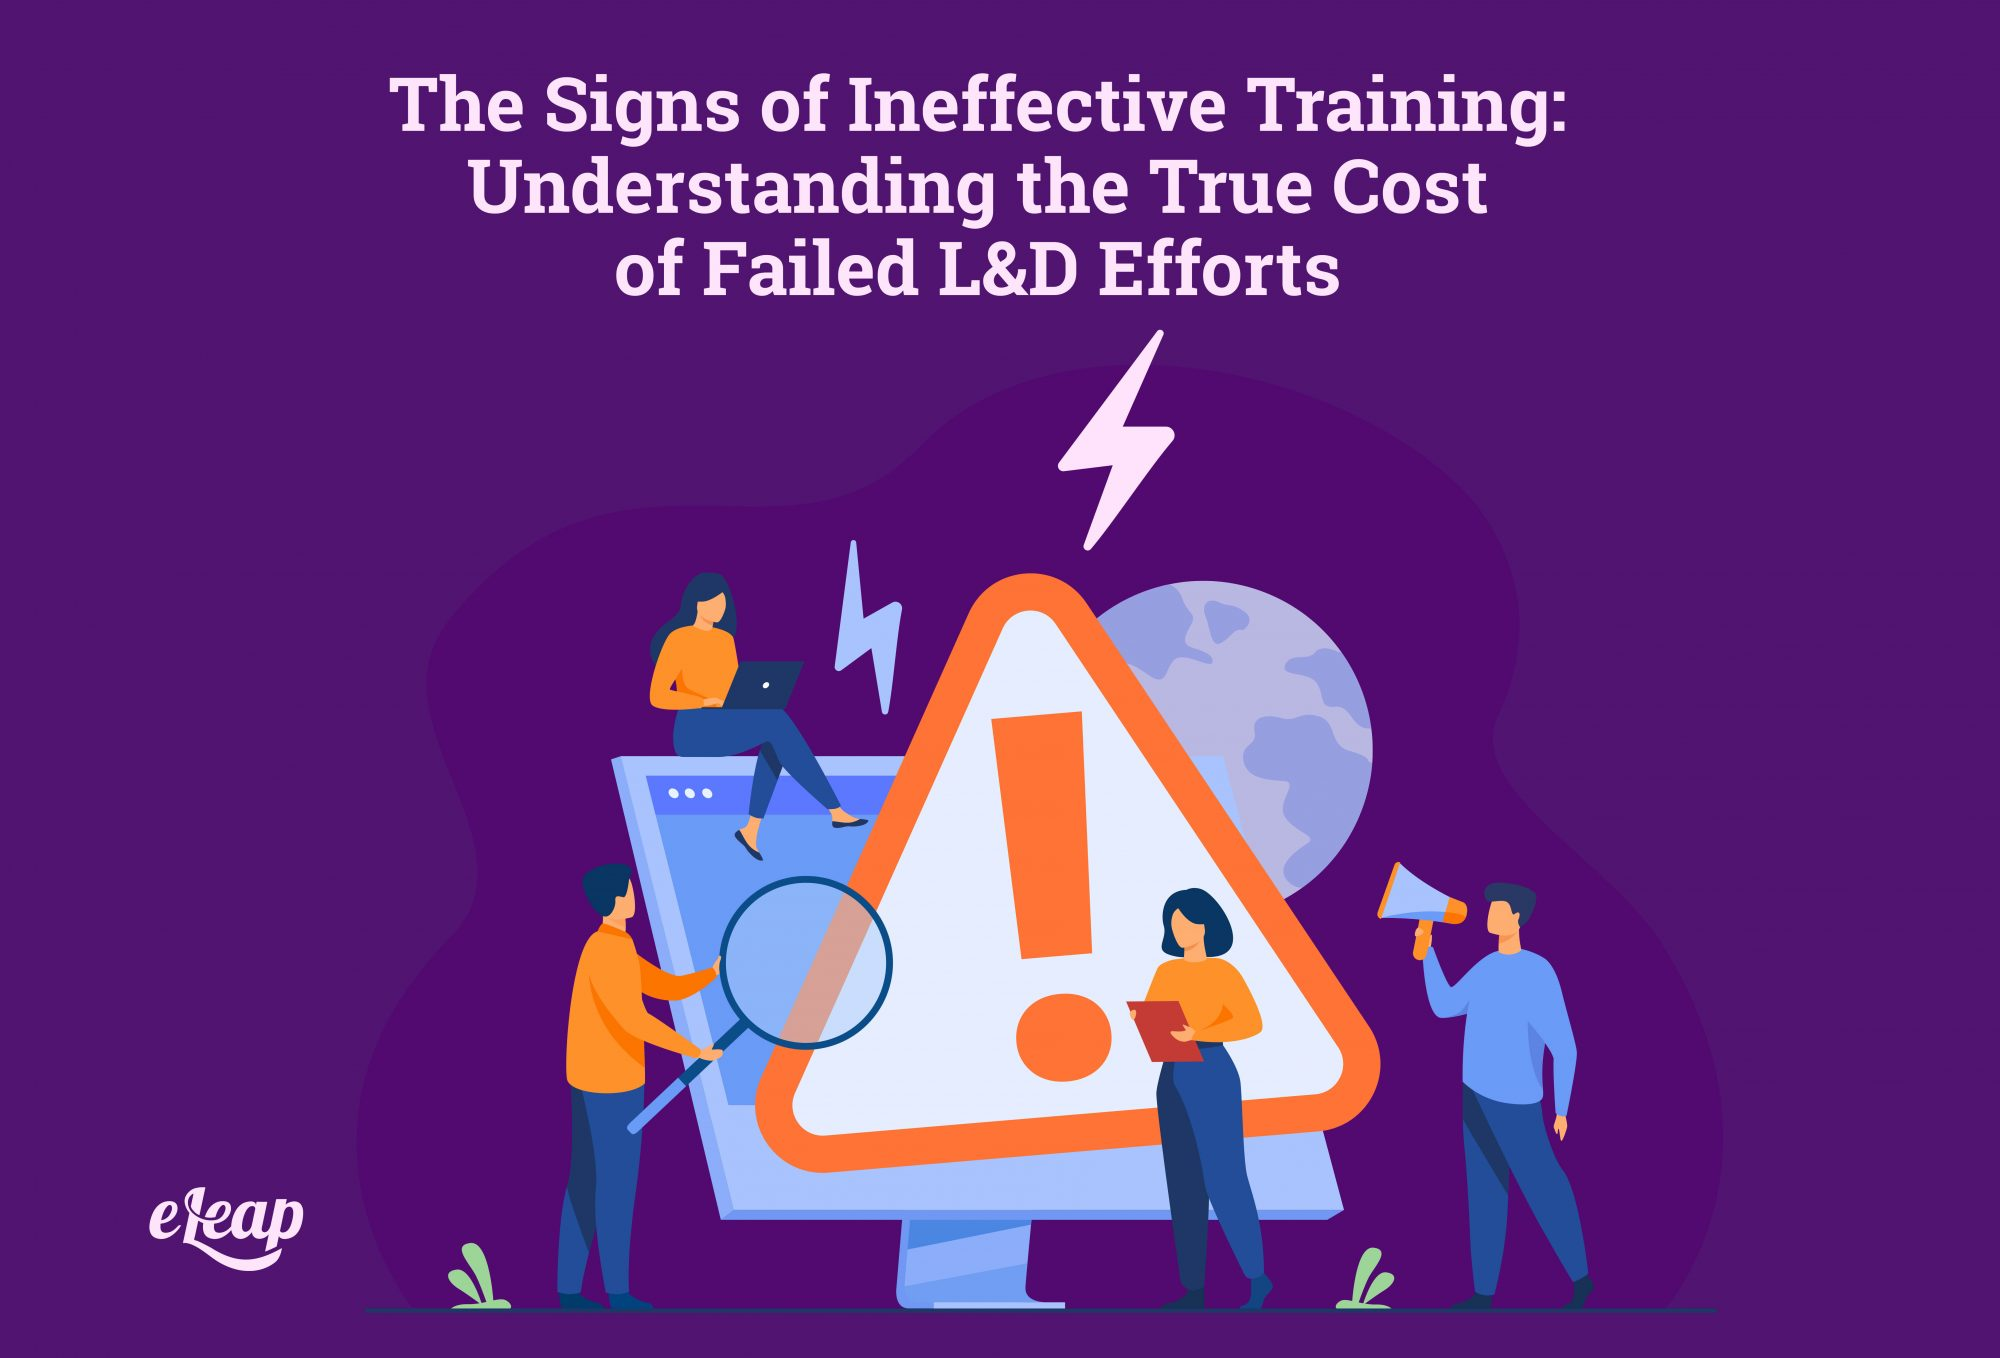 The Signs of Ineffective Training: Understanding the True Cost of Failed L&D Efforts